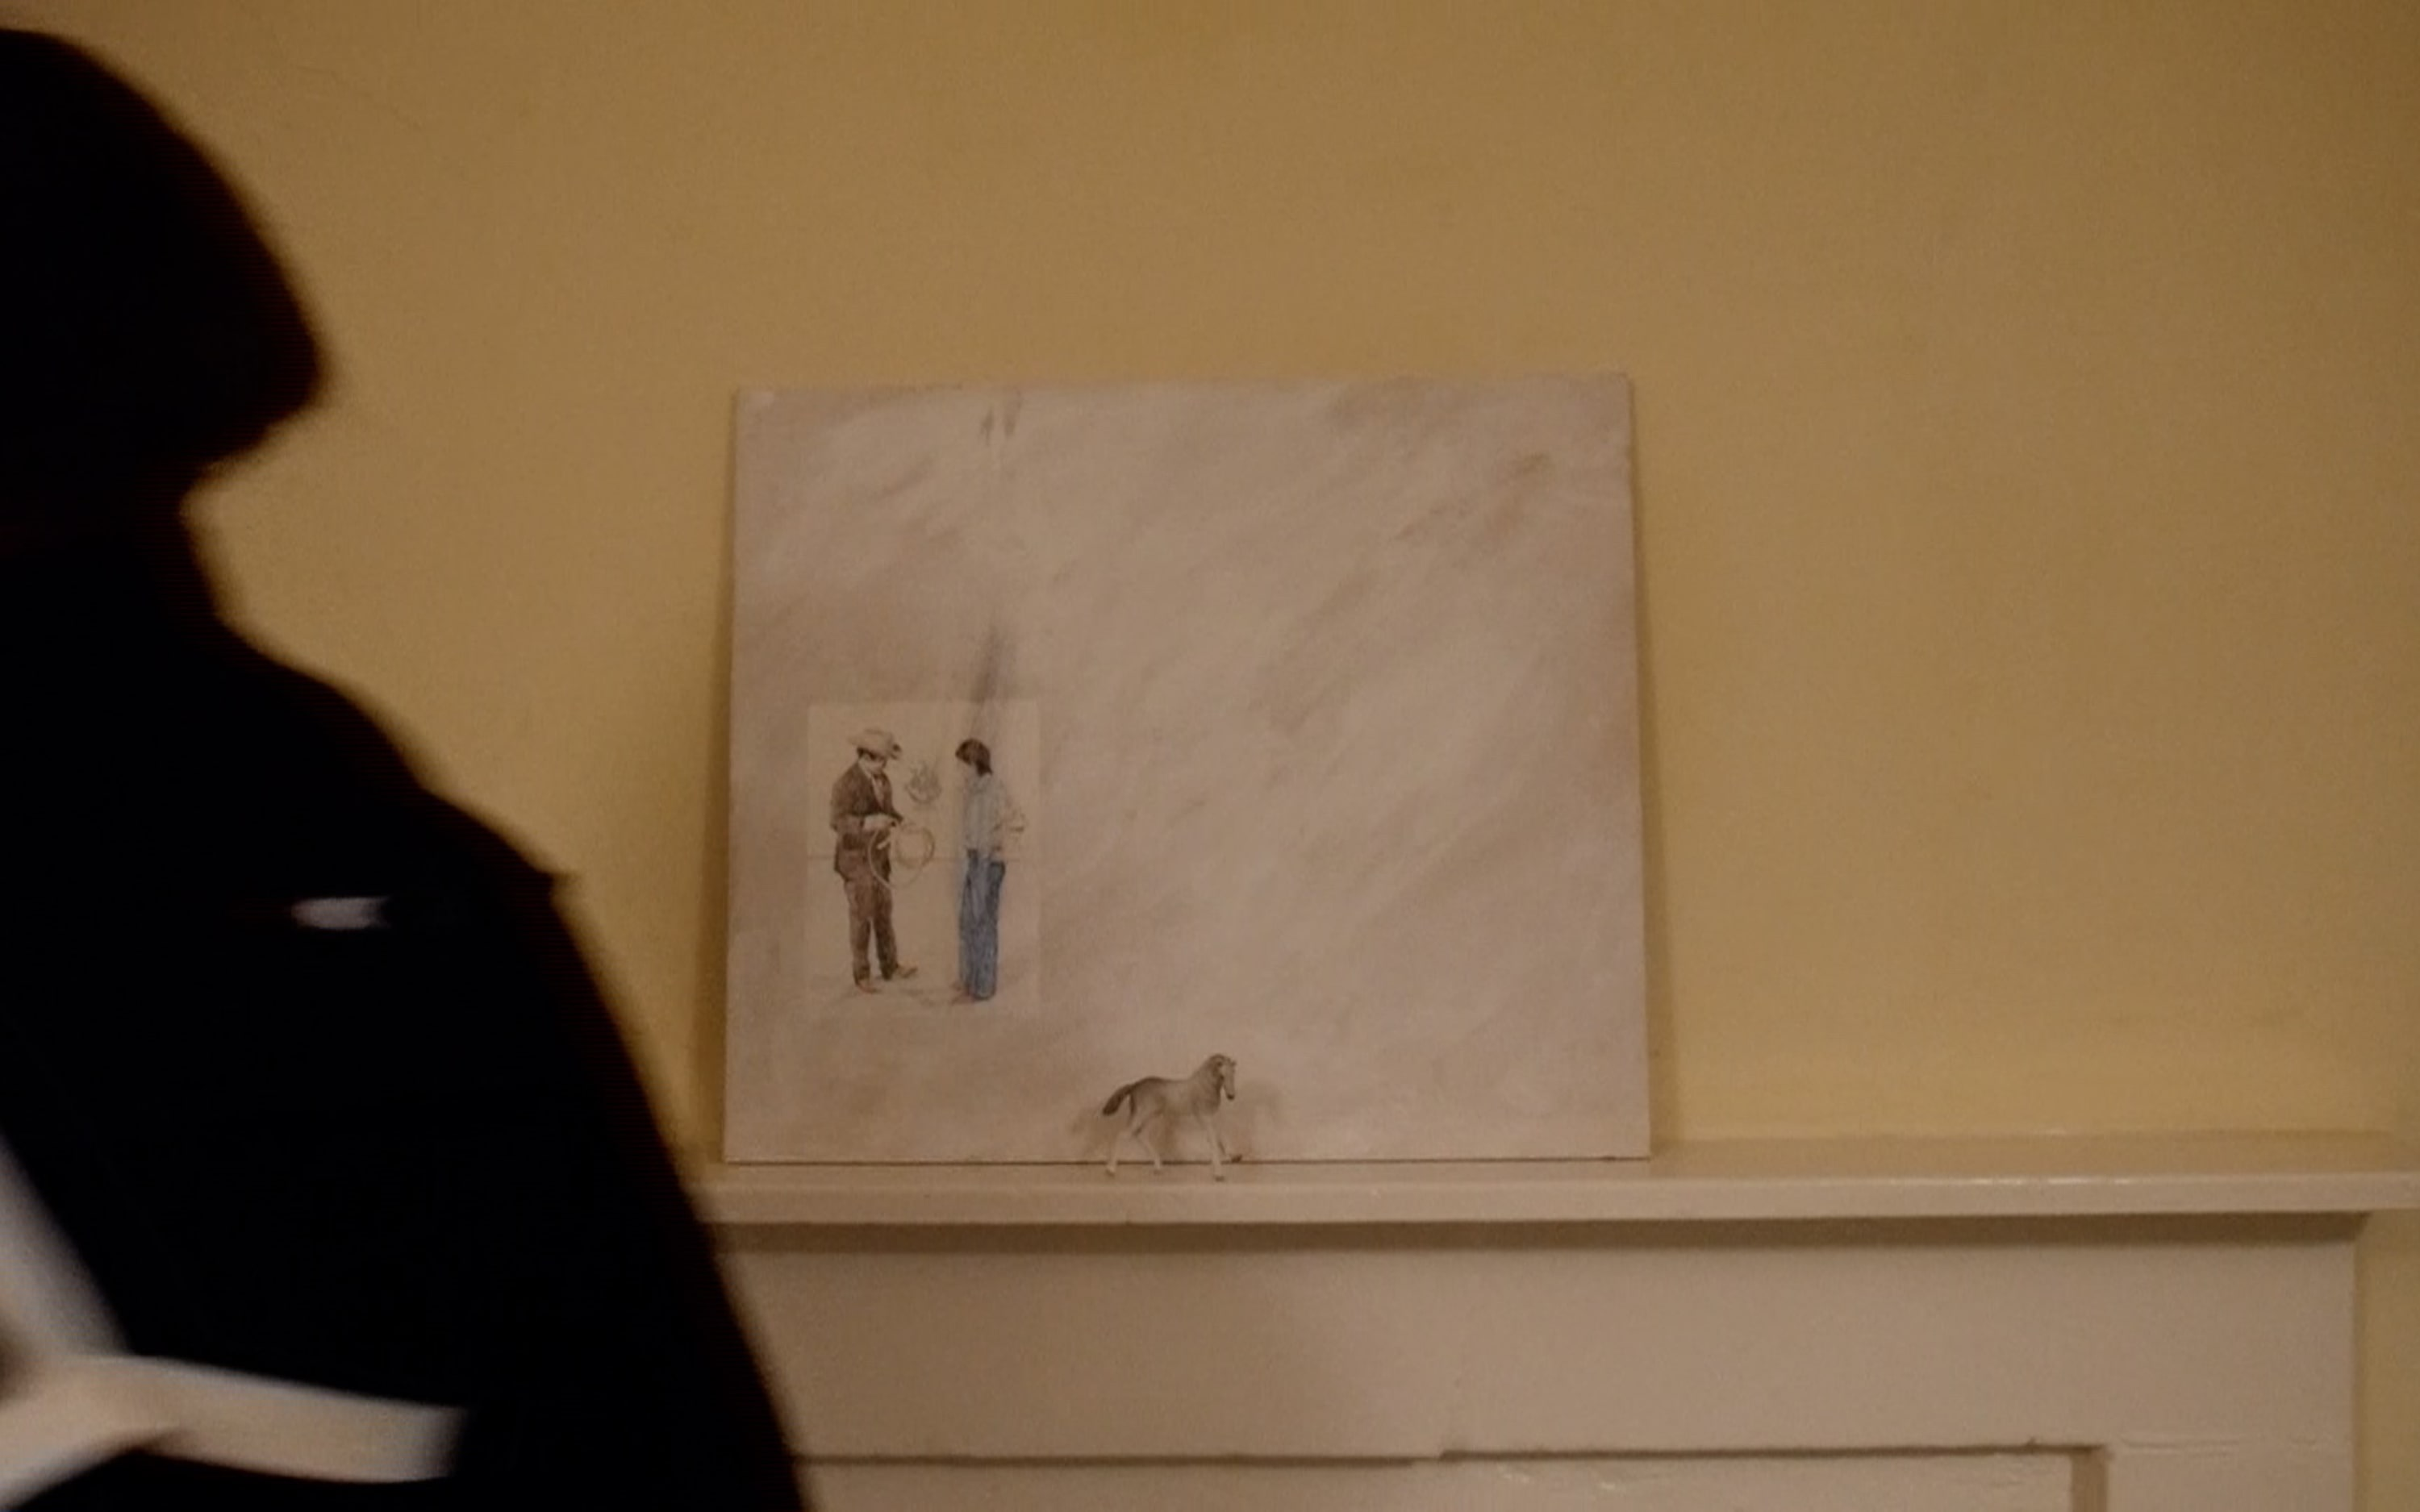 In front of the painting on the mantlepiece is a small figurine of a white foal with a bent leg. 2 men are in the painting.